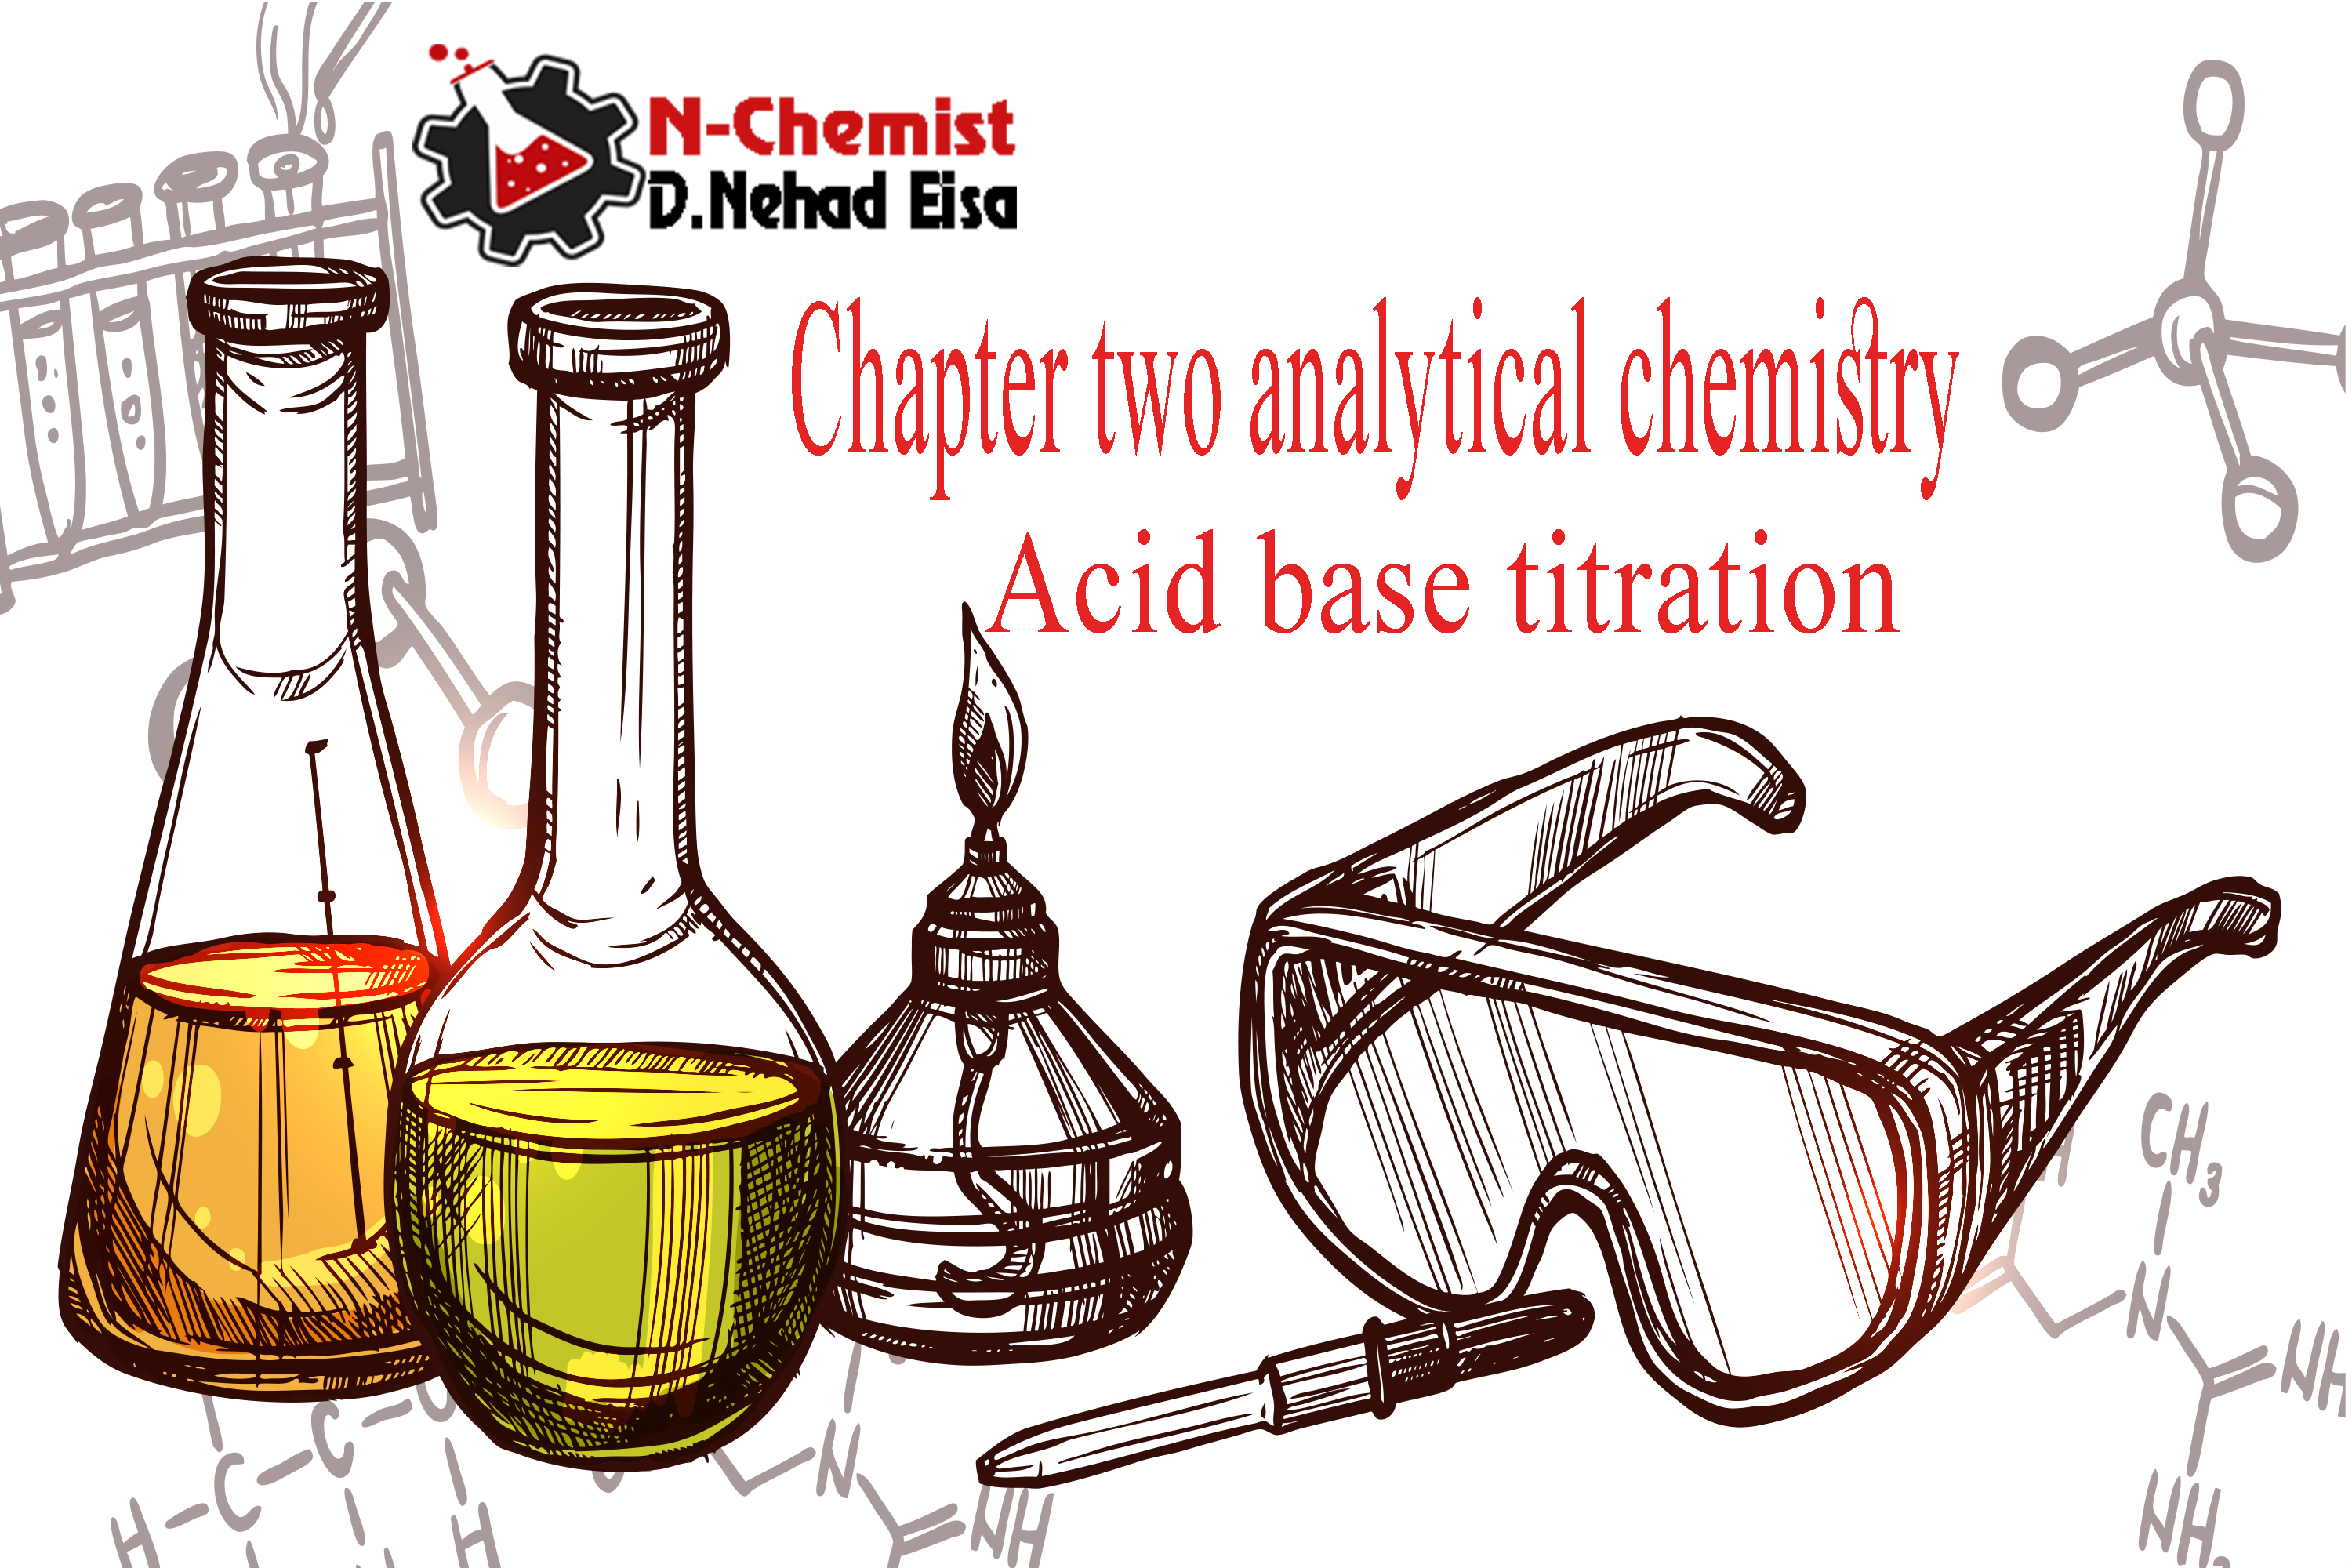 Chapter two analytical chemistry Acid base titration